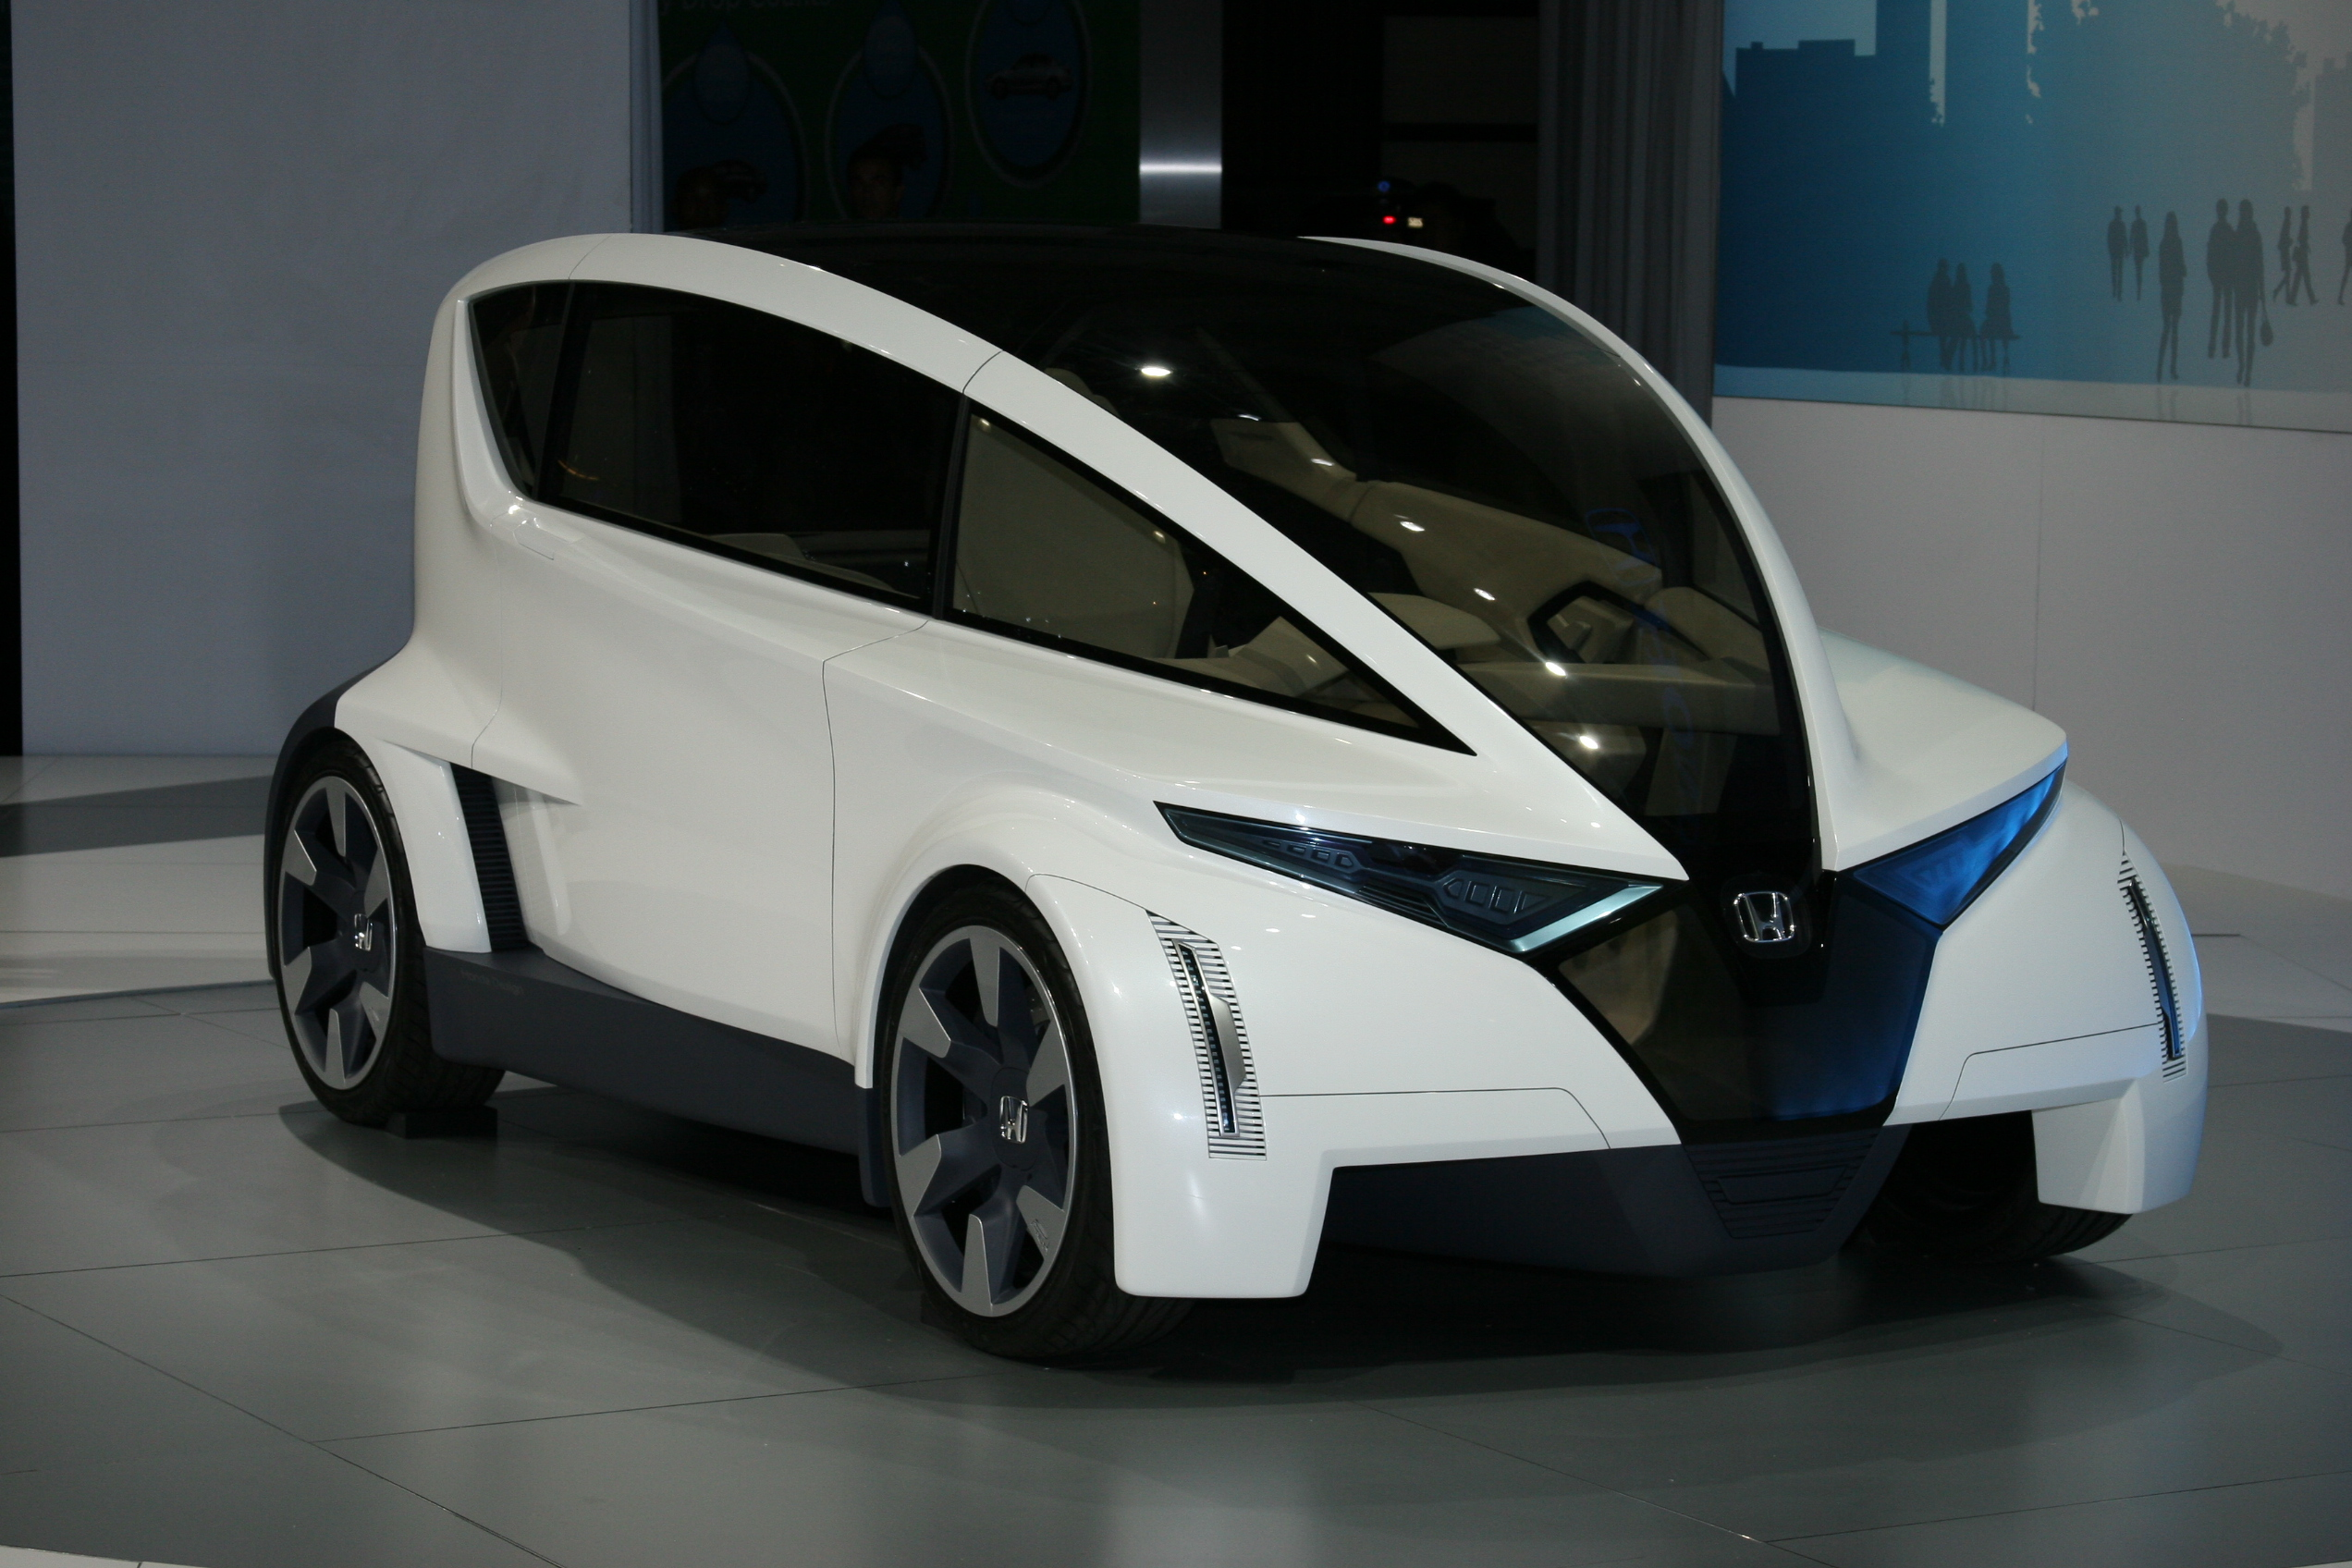 Honda P Nut Concept Takes On Smart Fortwo And Scion Iq